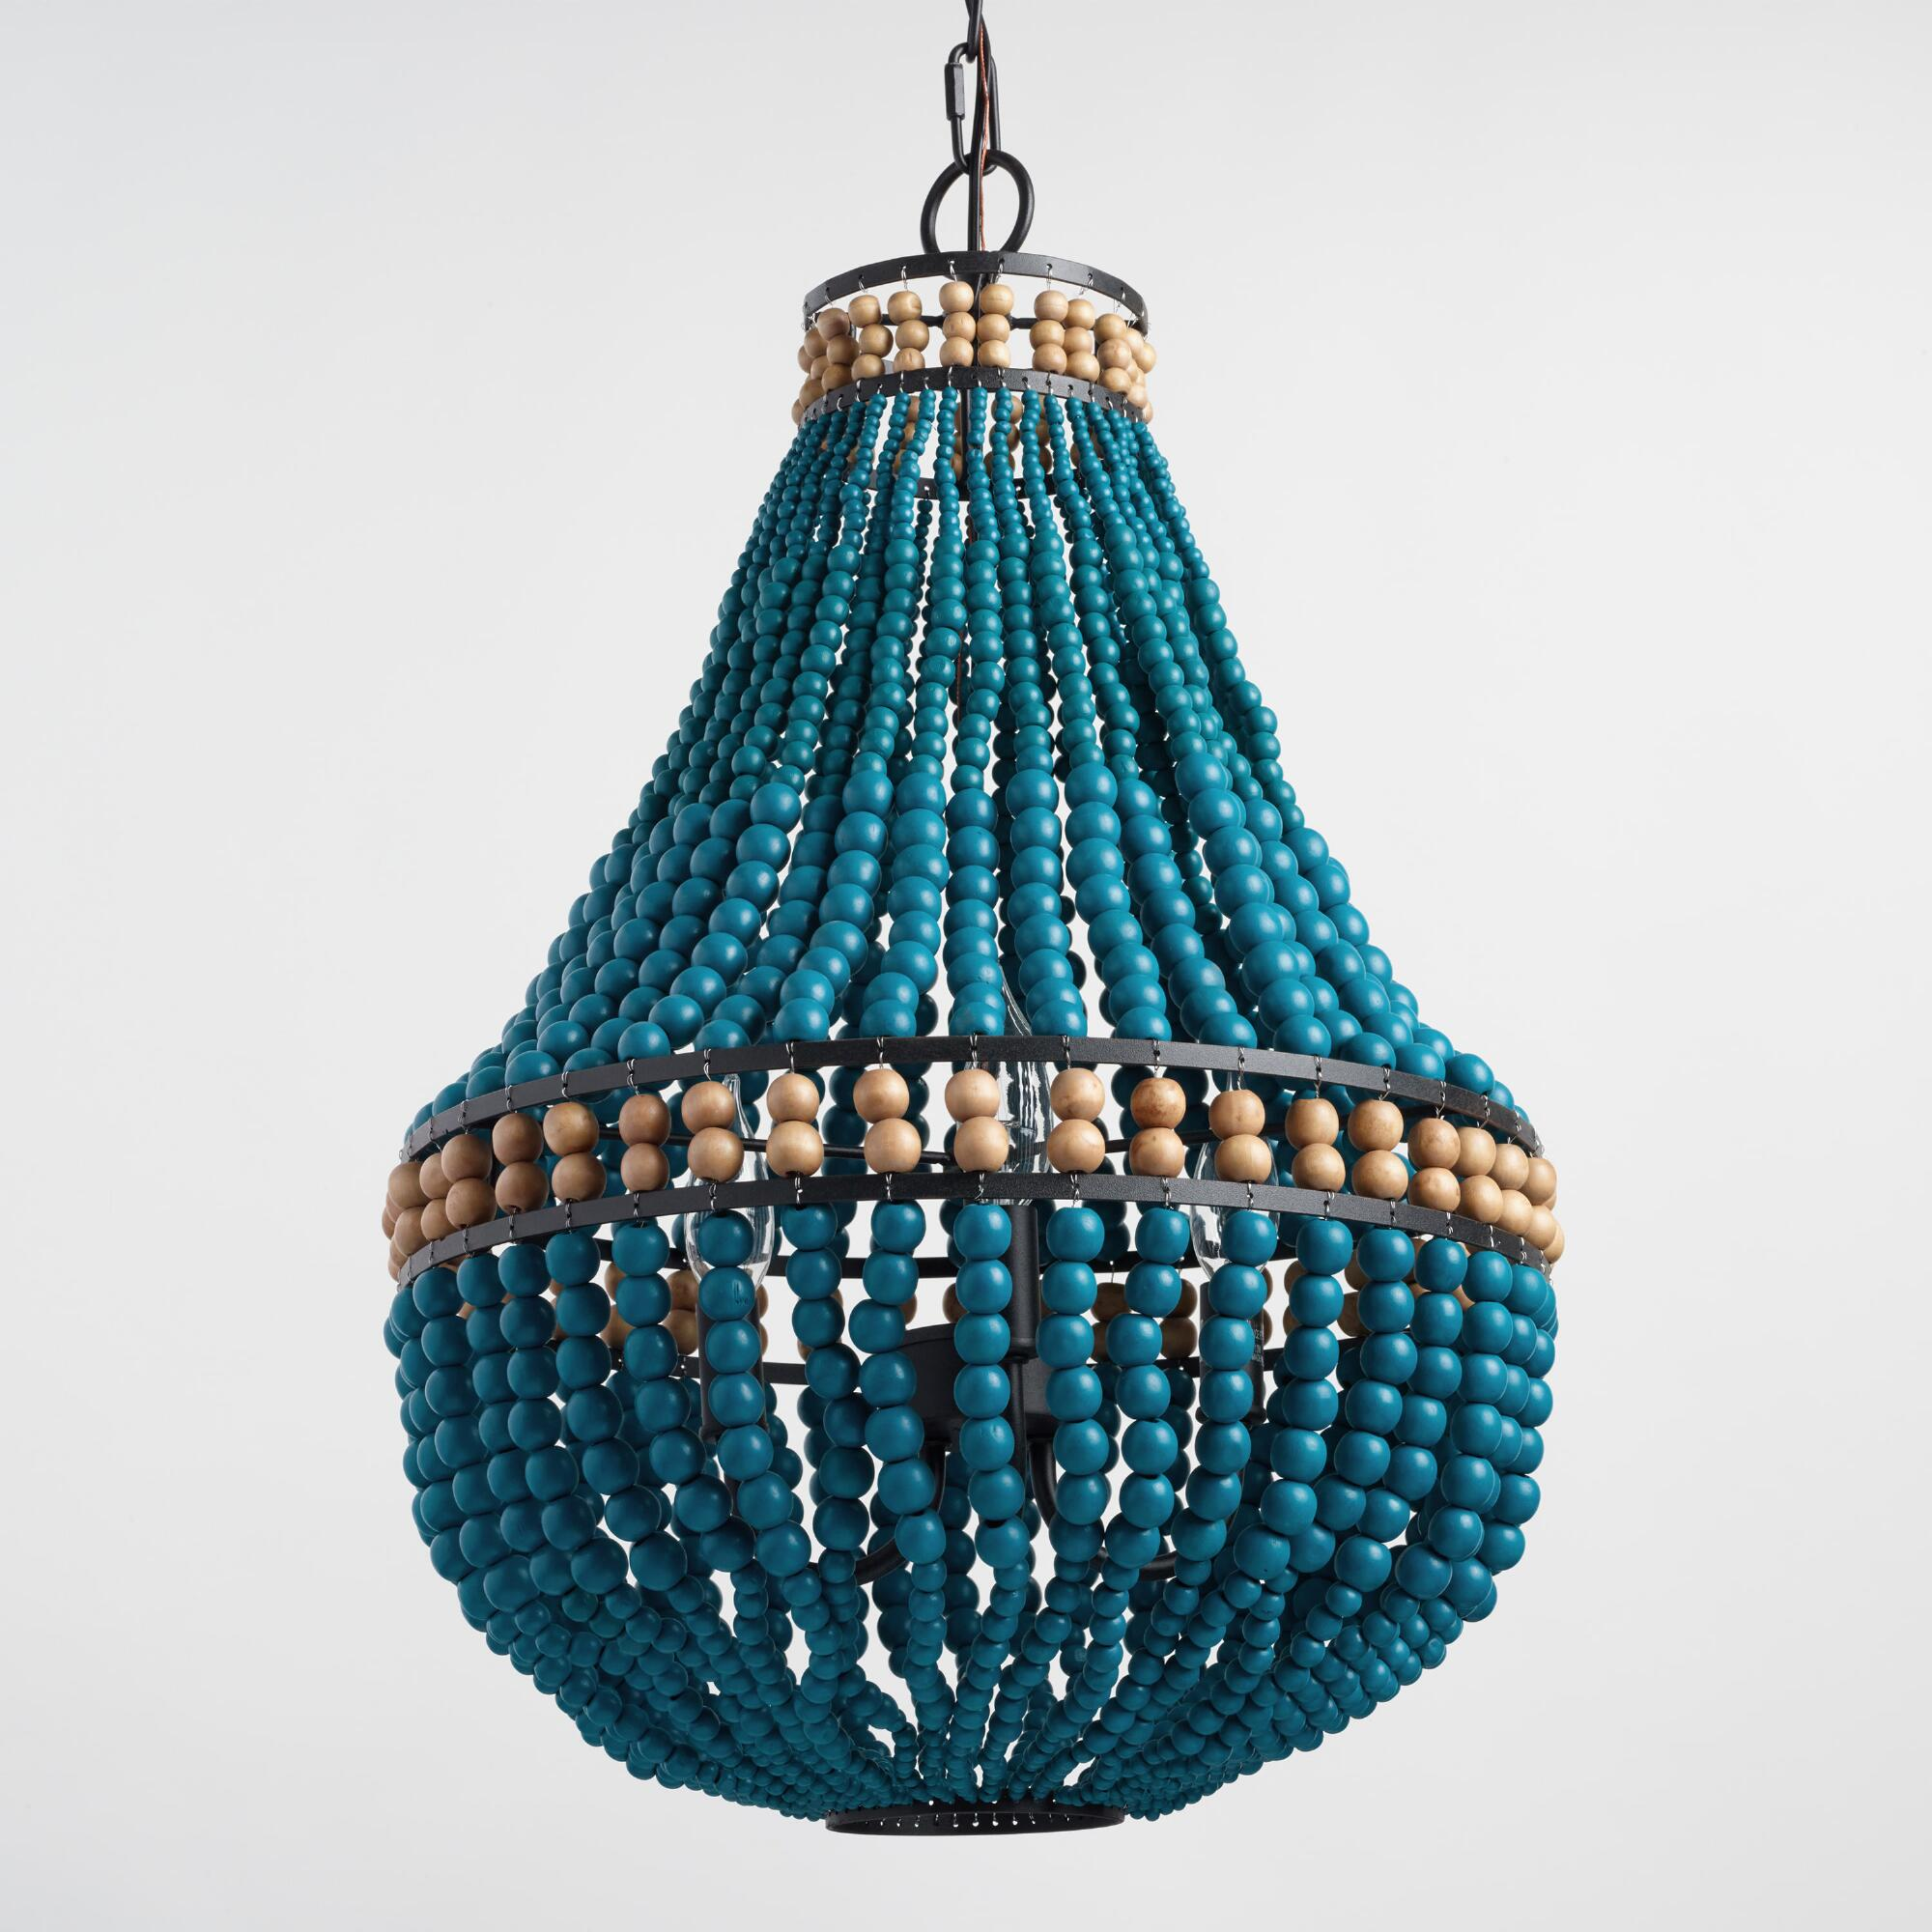 creative designs most lamps chandeliers panda and bored of lamp the teal chandelier